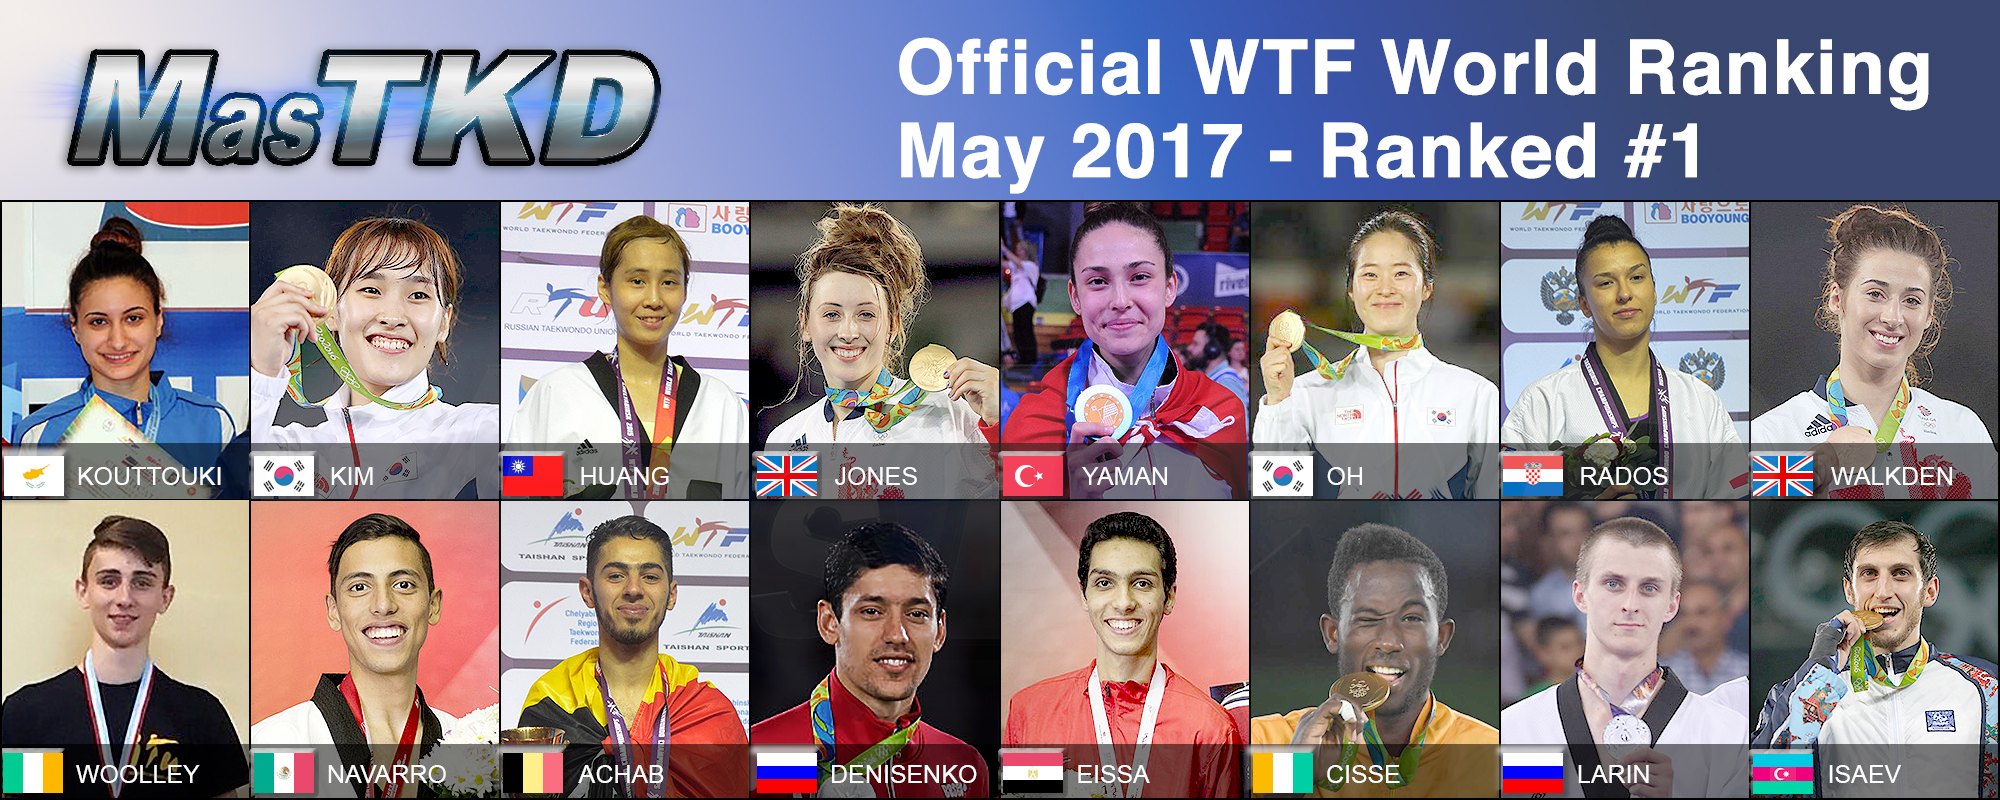 Top Ten del WTF World Ranking, mayo 2017